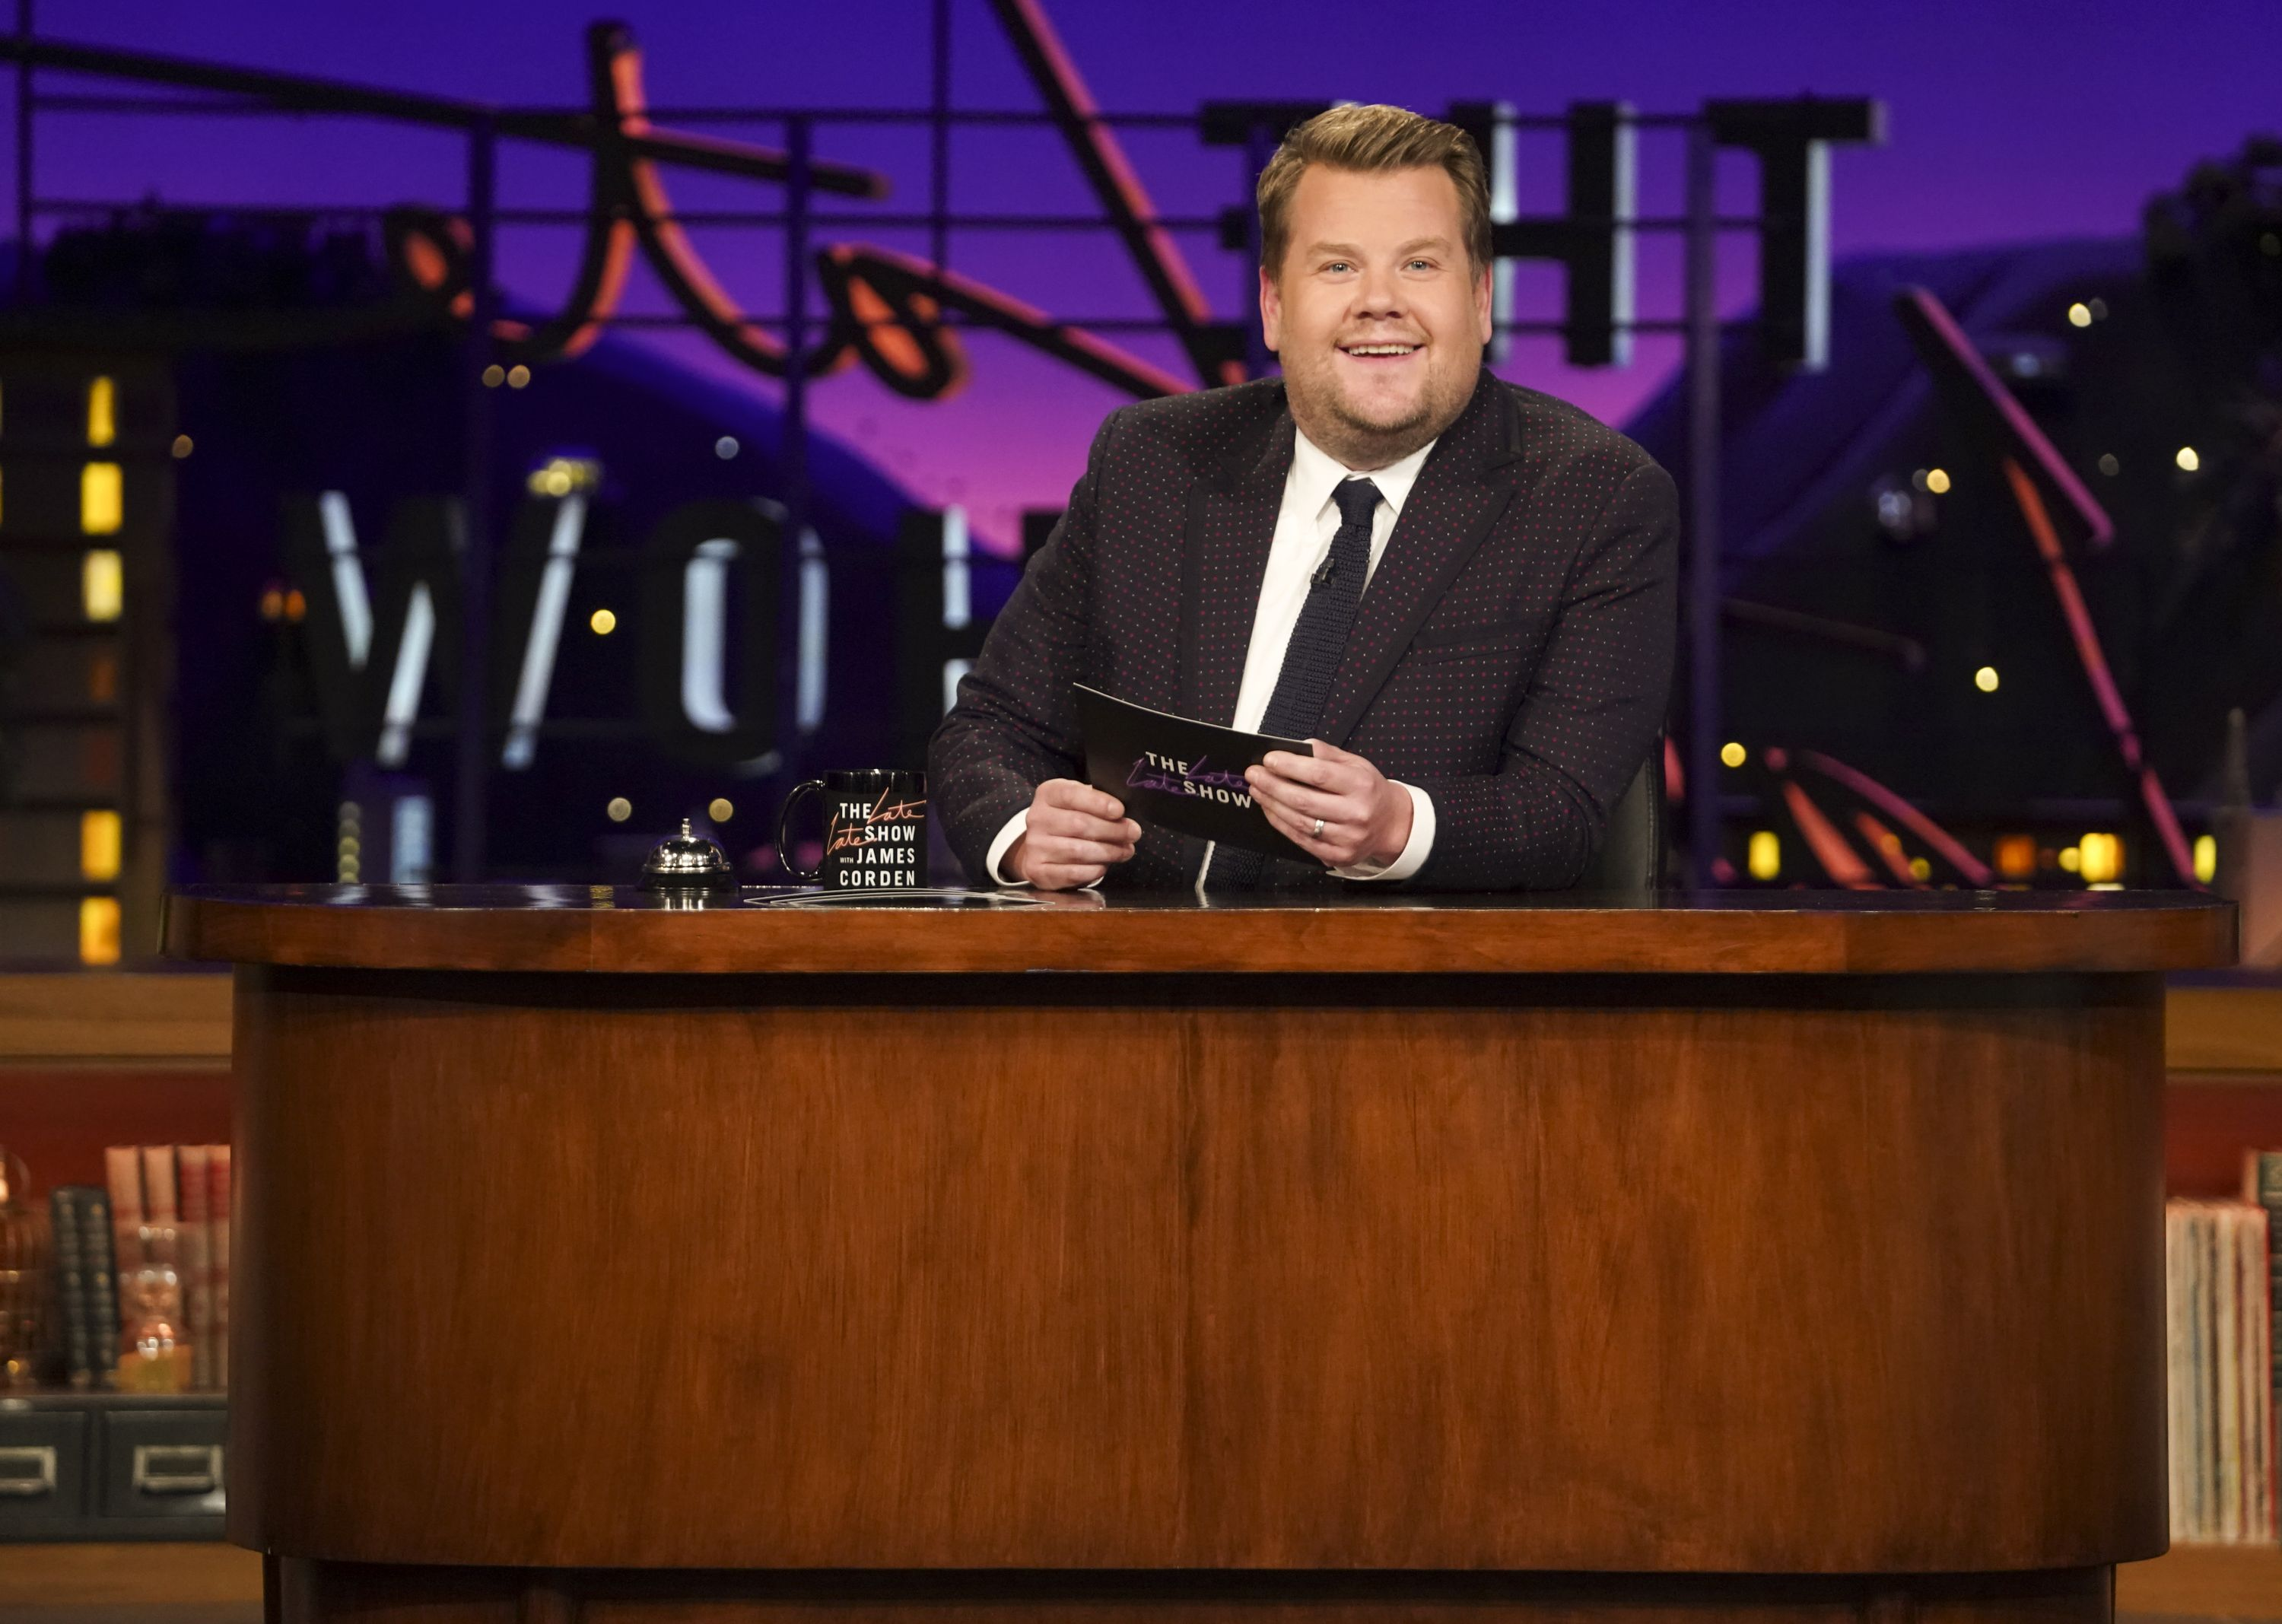 Where Is James Corden? Here's What He Said About Not Being on 'The Late, Late Show'